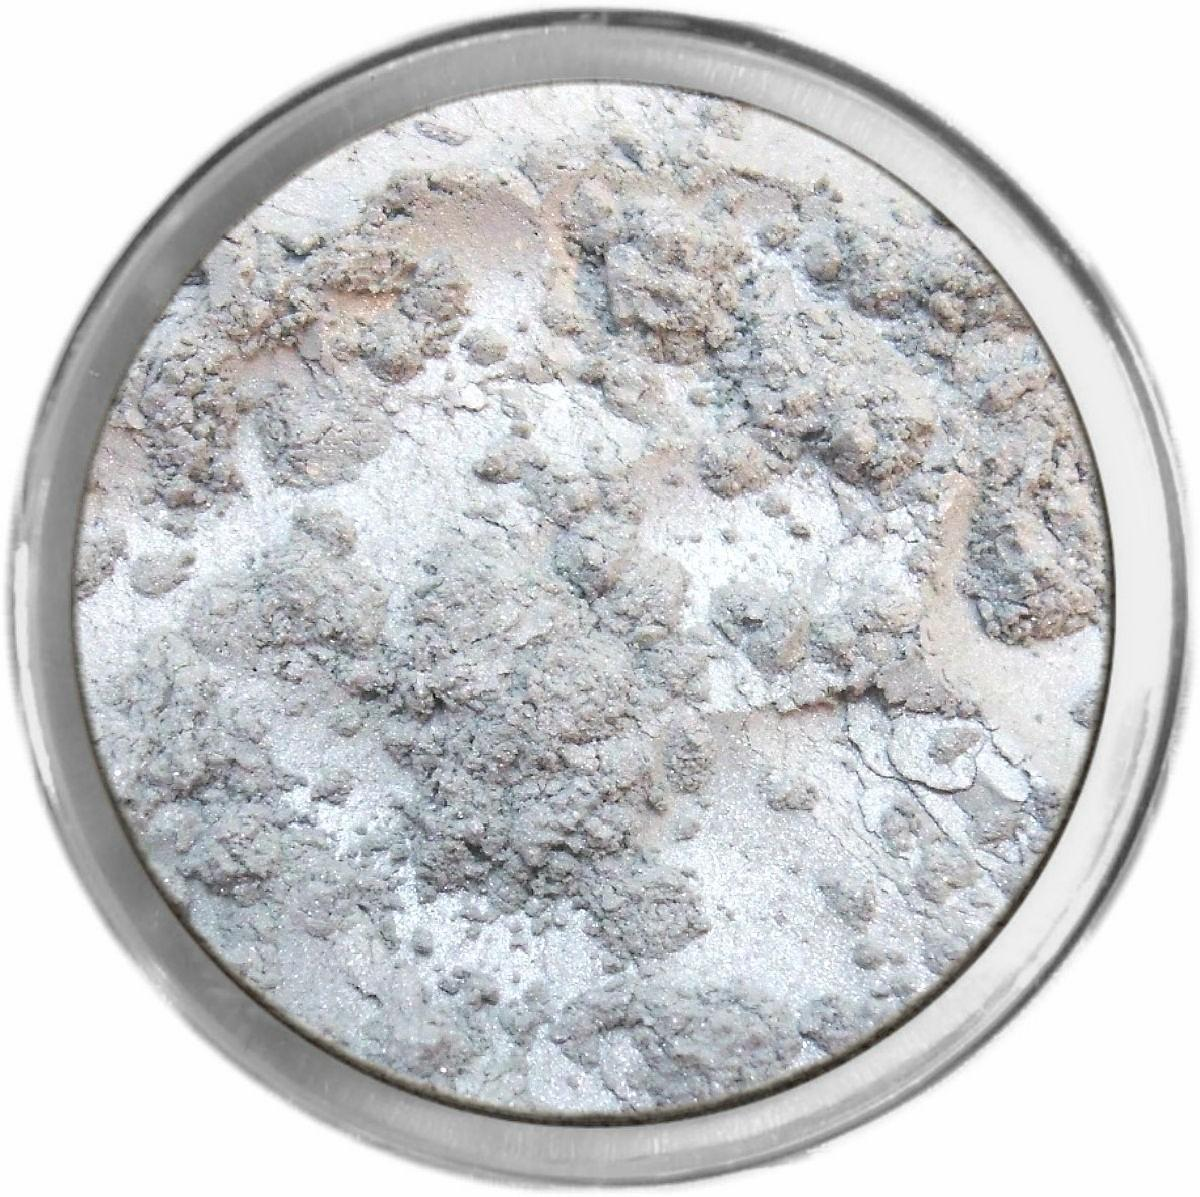 AIRY loose powder mineral multi-use color makeup bare earth pigment minerals